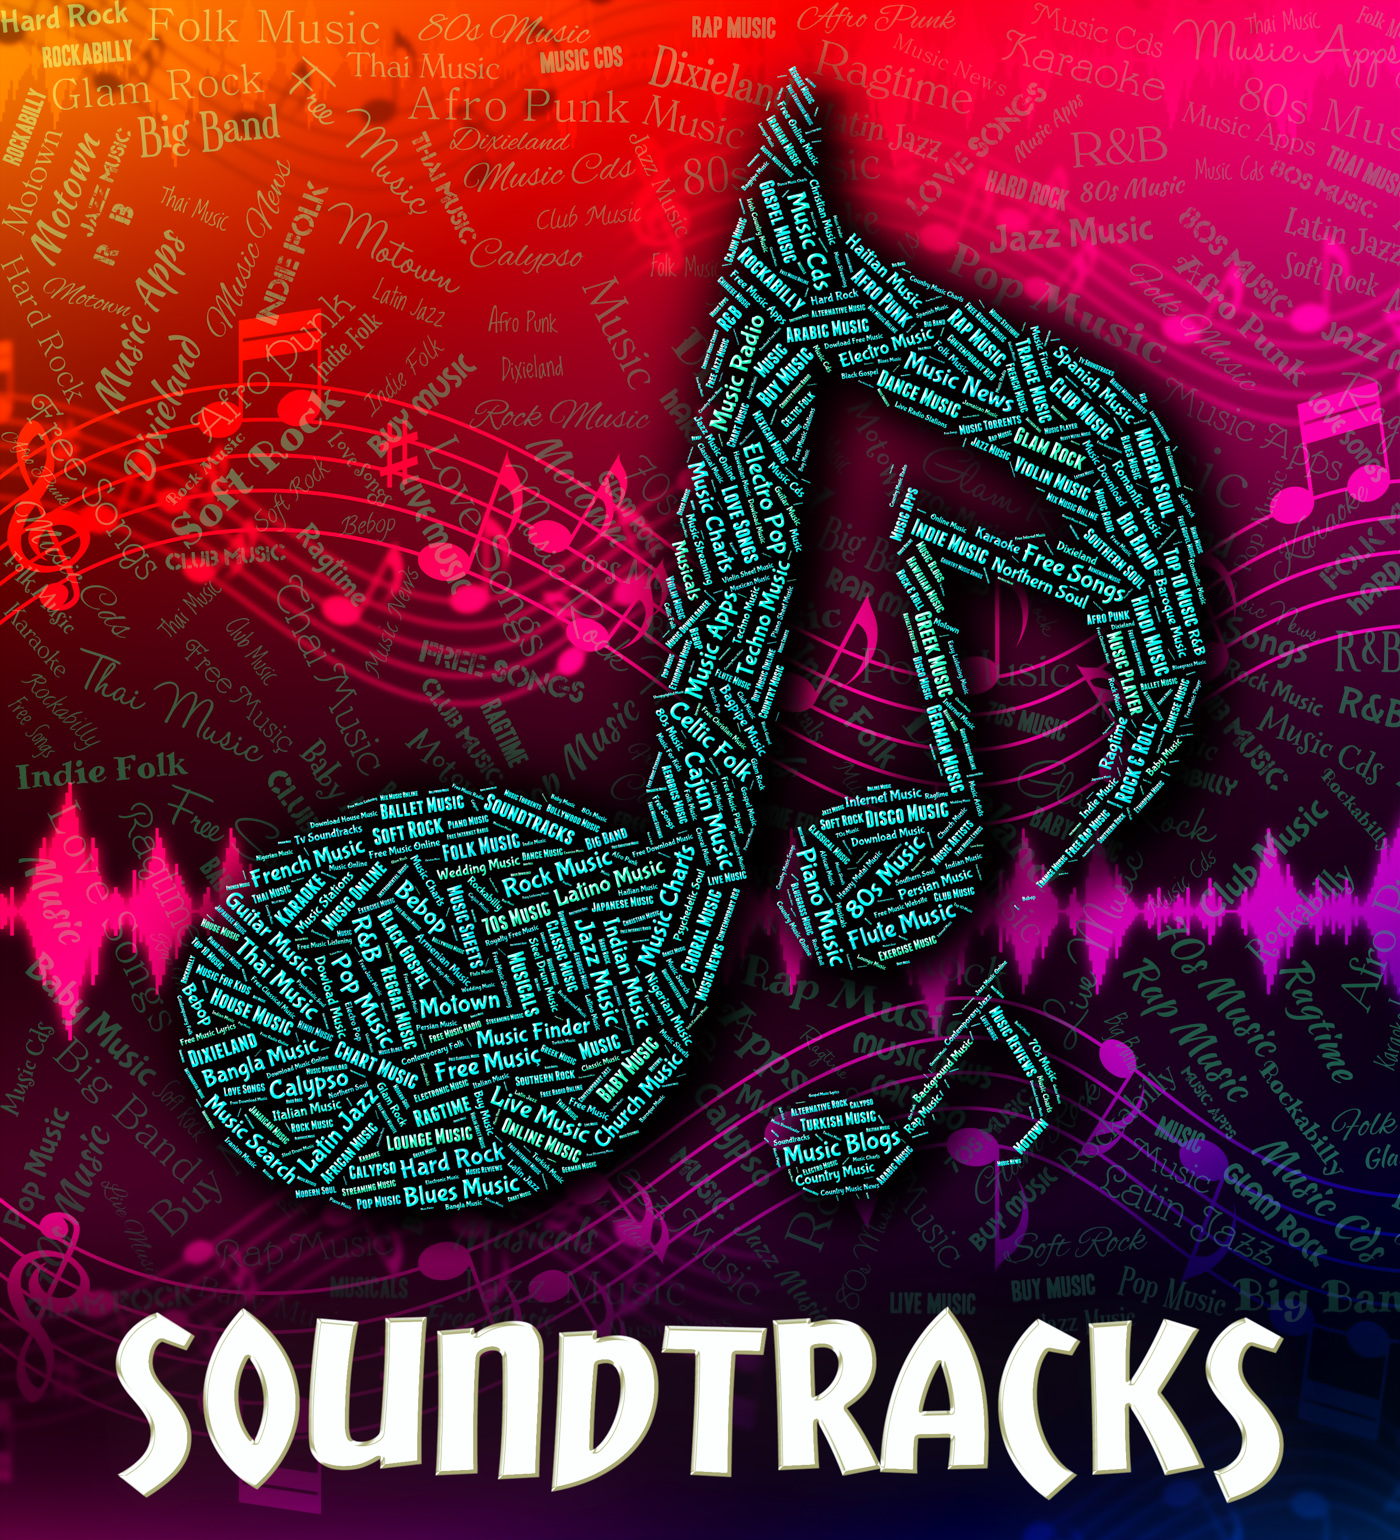 Soundtracks music indicates motion picture and accompanying photo